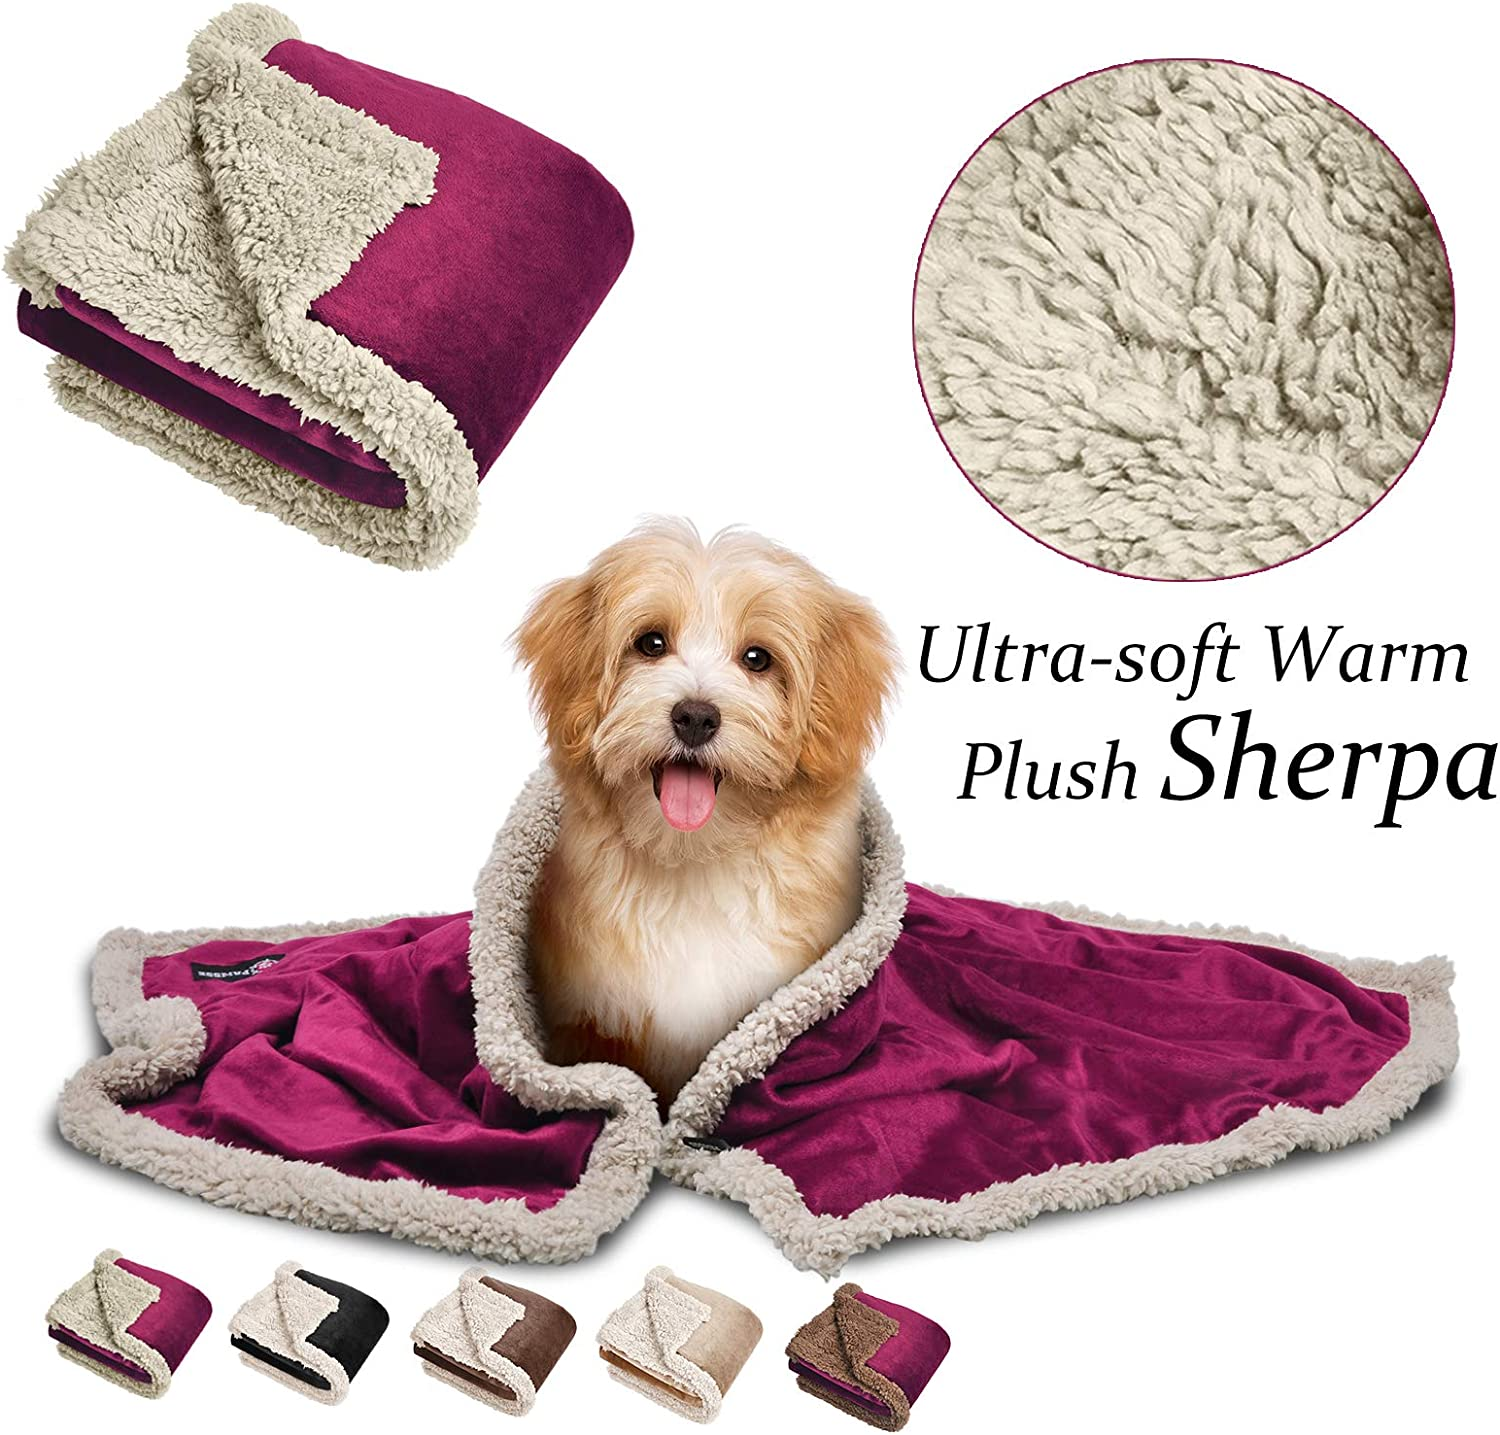 Pawsse Sherpa Puppy Blanket for Small Dogs Kitten, Warm Flannel Plush Pet Bed Blanket Reversible, 45 x30  Wine Tan